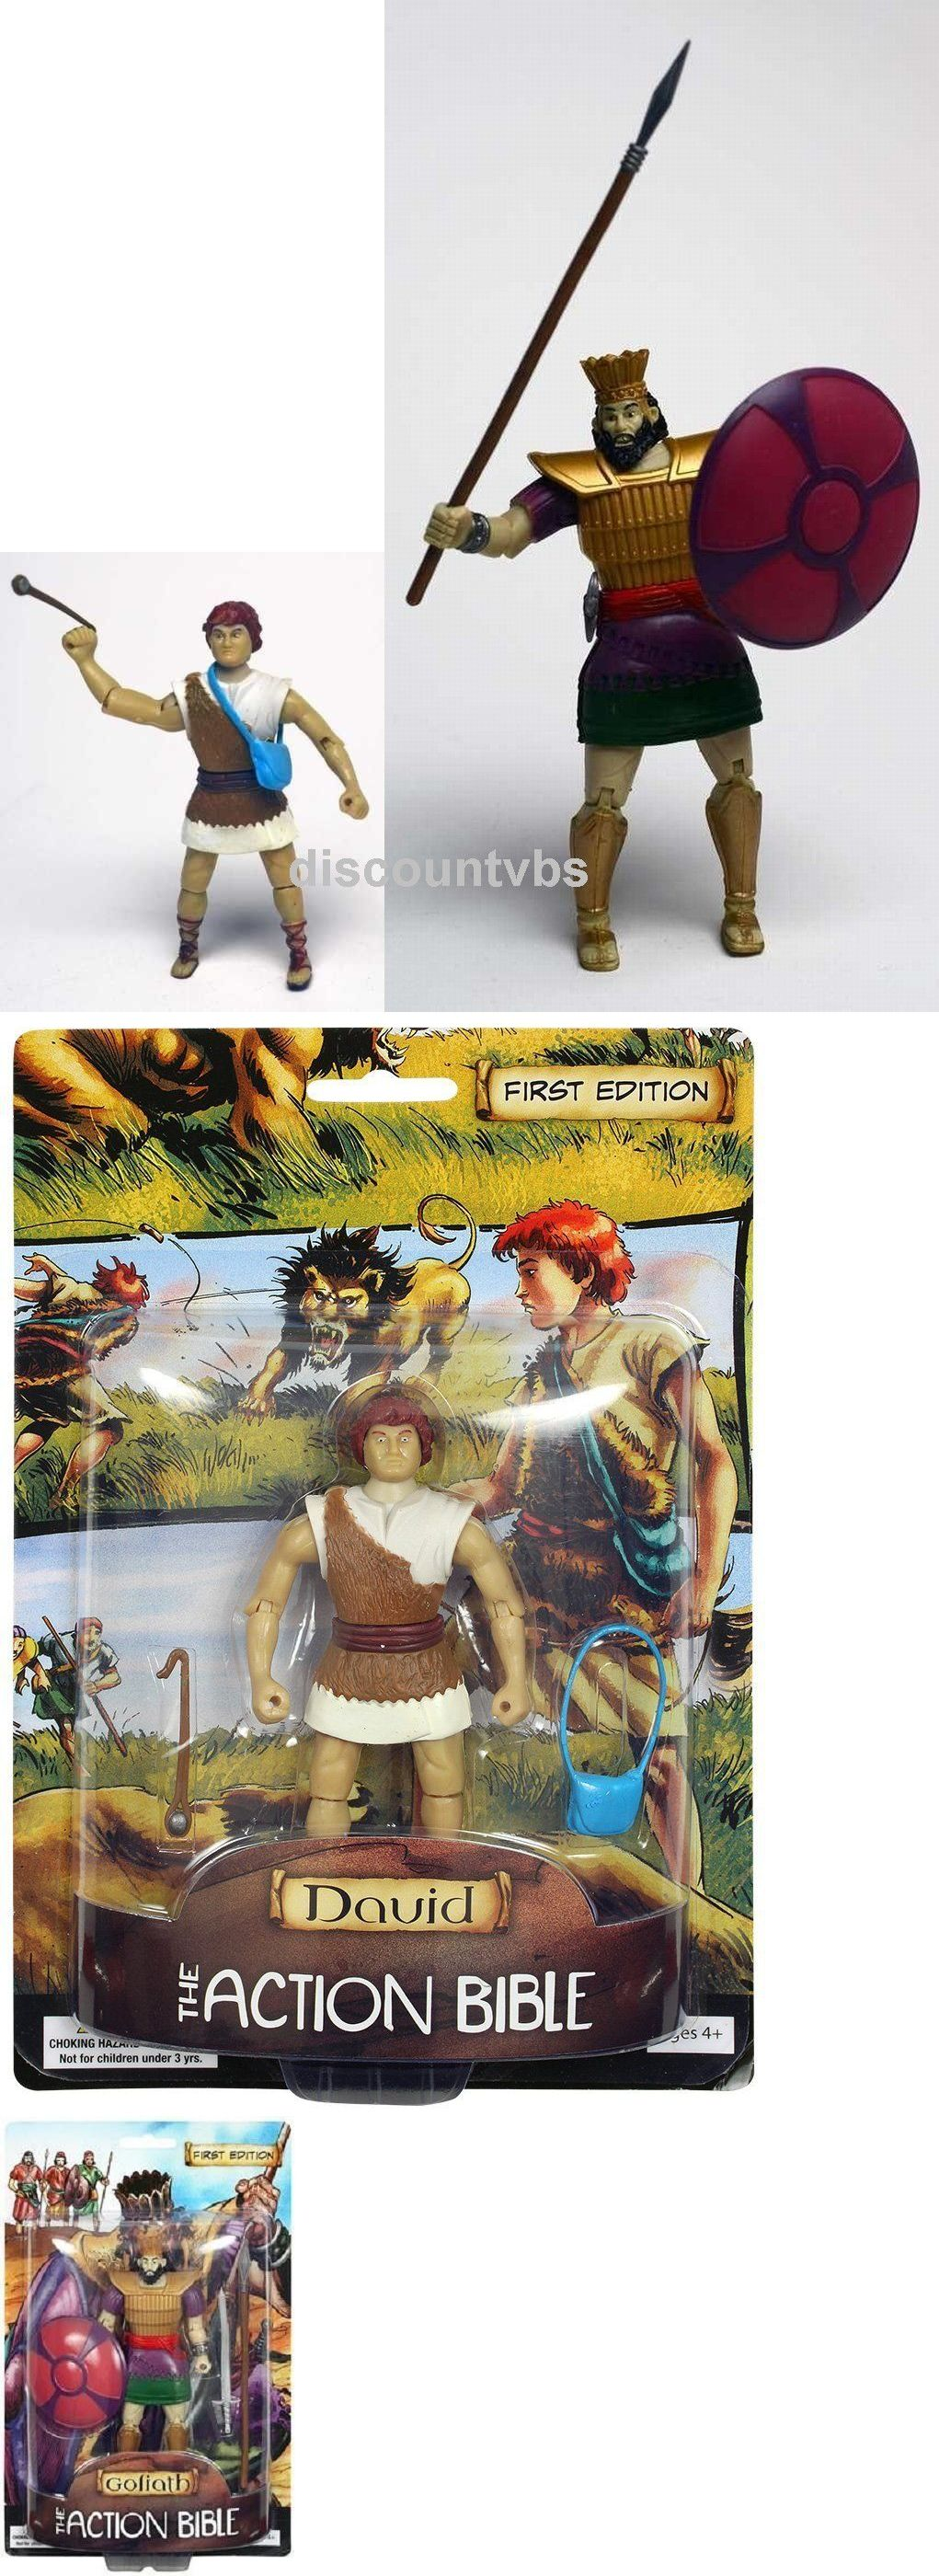 David And Goliath Beginners Bible Action Figures ... |David And Goliath Action Figures